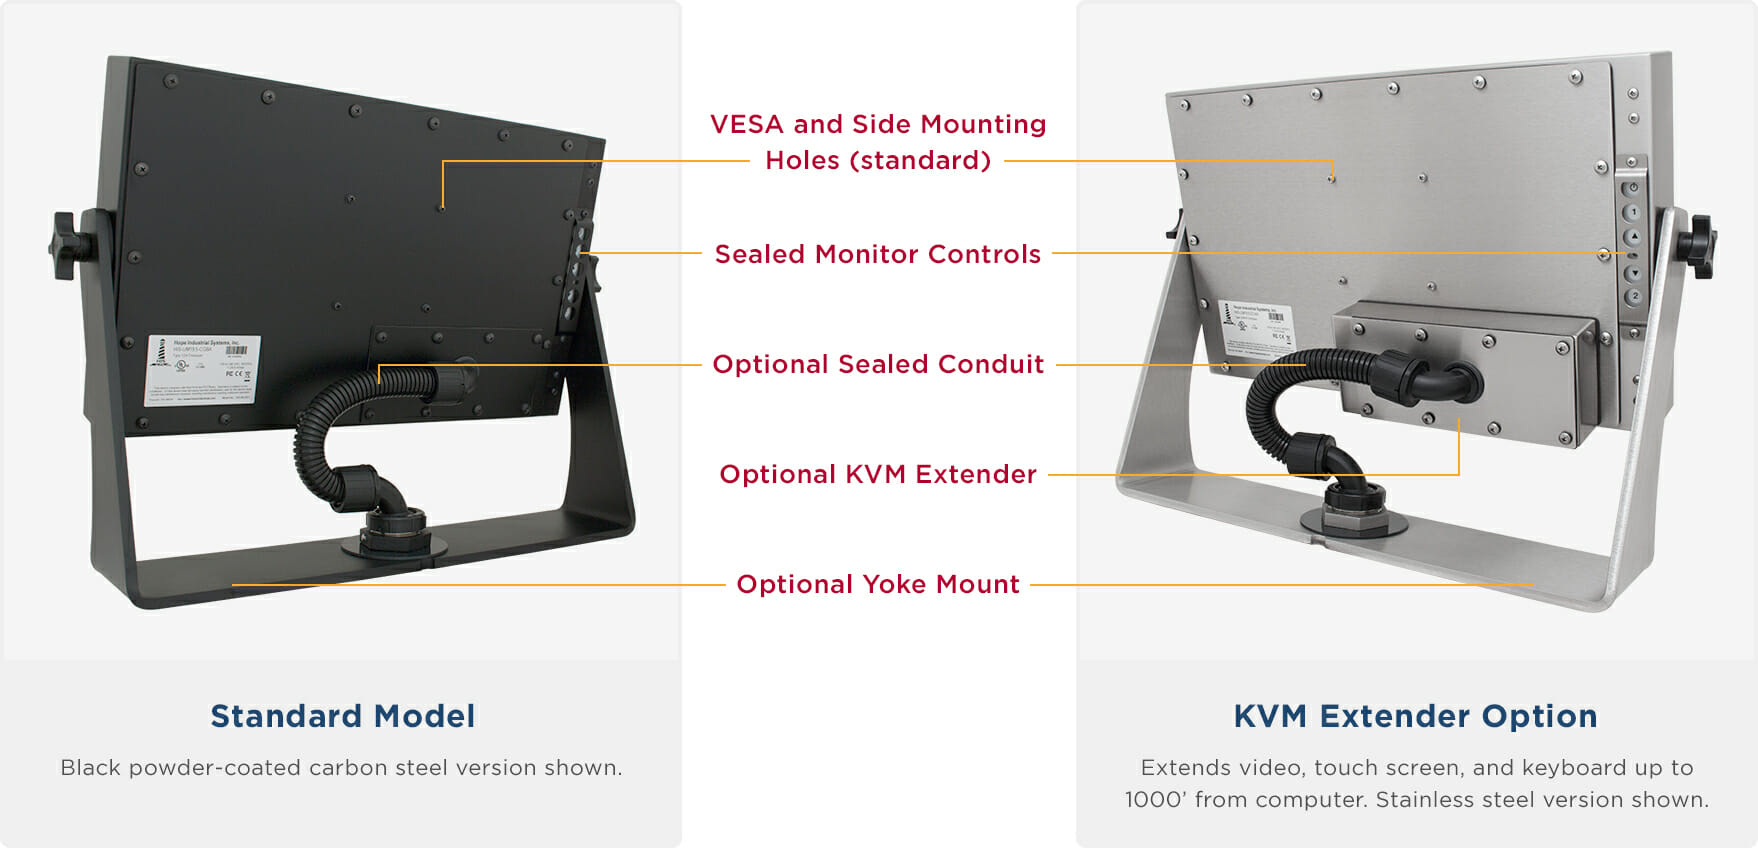 "Rear views of NEMA 4/4X Rated Widescreen 19.5"" Universal Mount Monitors showing Industrial Enclosure features and options"